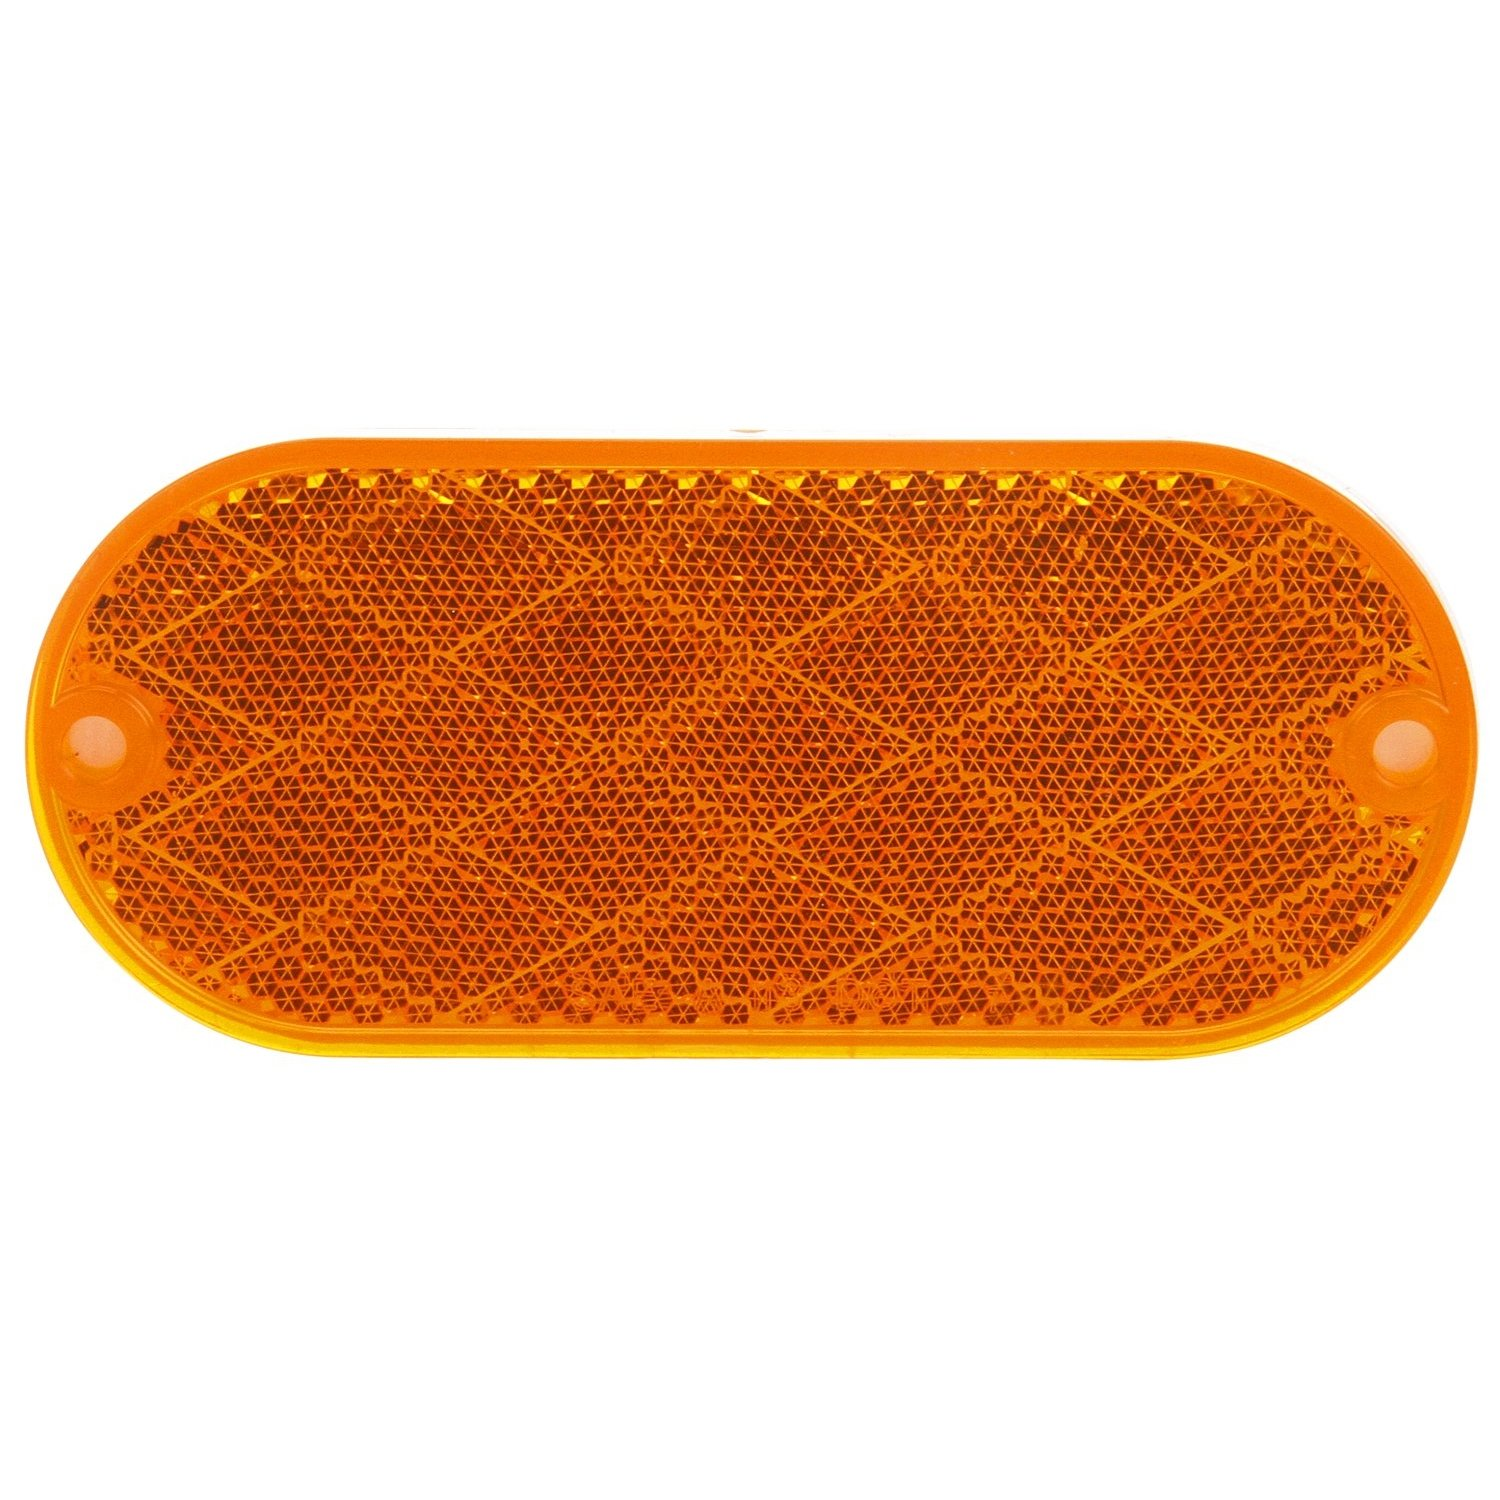 Truck-Lite 98001Y Yellow Reflector Oval, Yellow, Reflector, 2 Screw Or Adhesive Mount